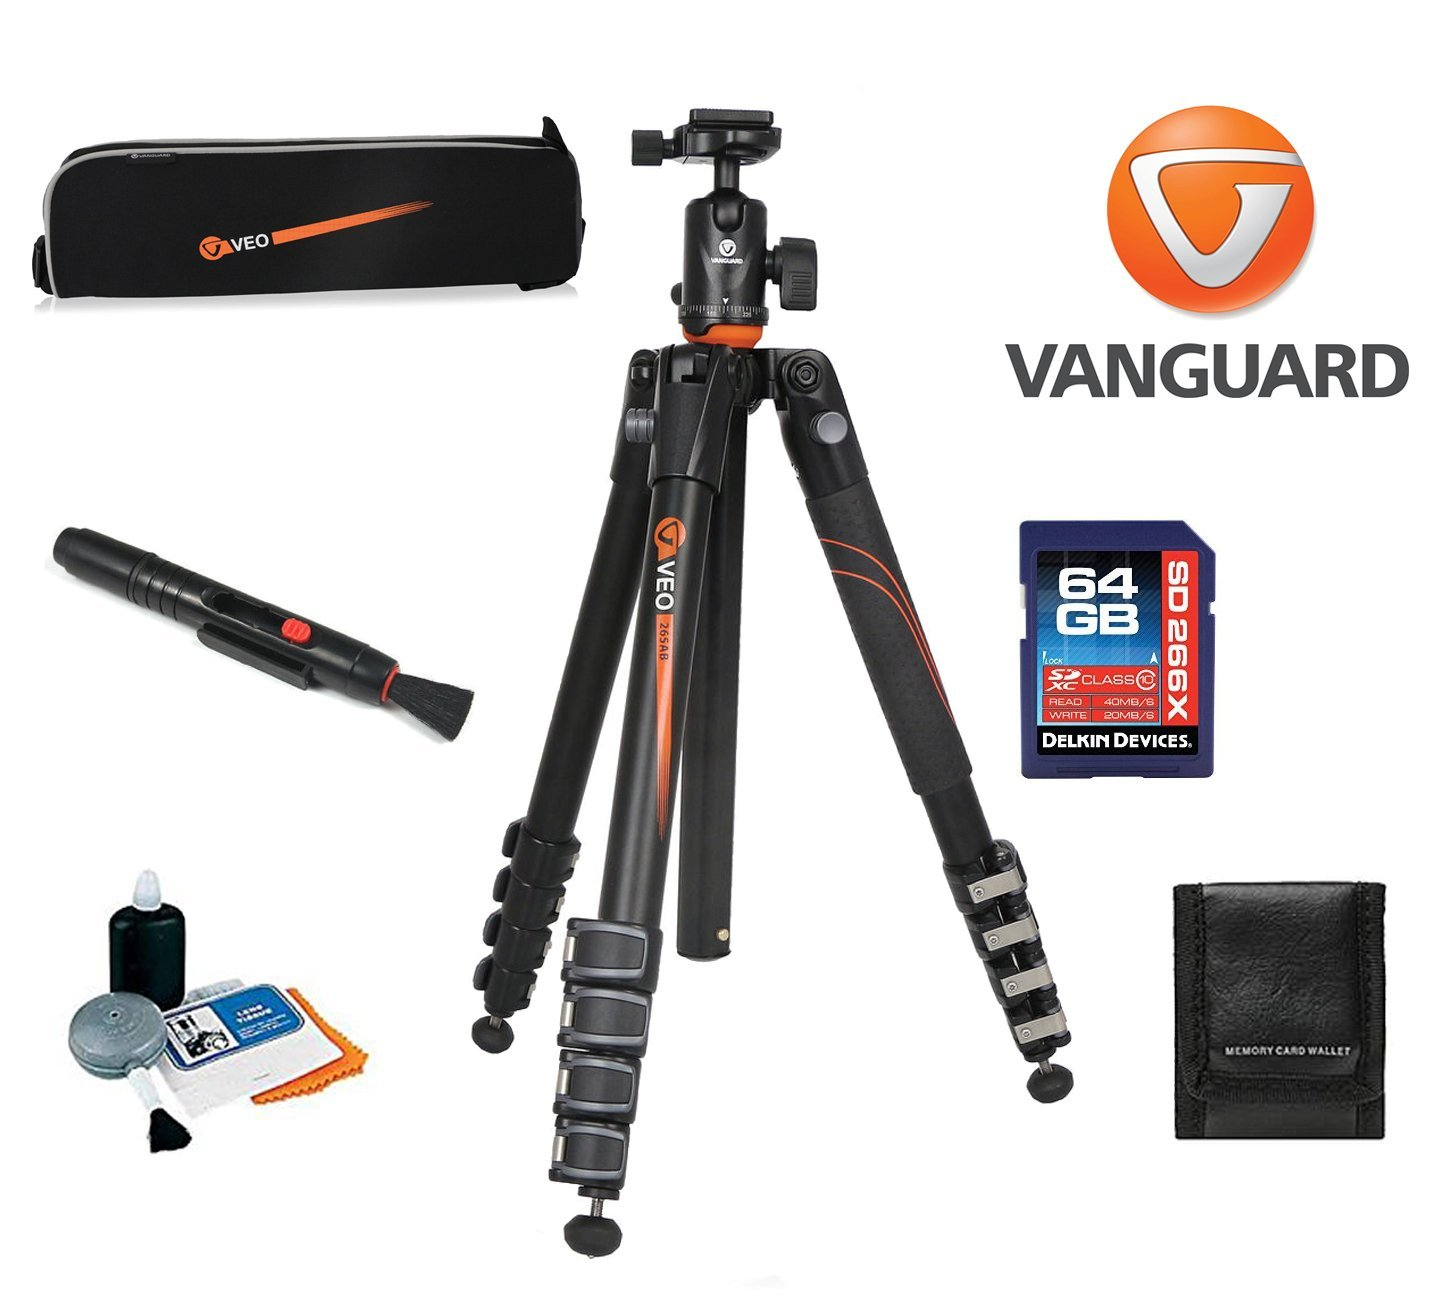 Vanguard VEO 265CB Carbon Fiber Tripod with TBH-50 Ball Head W/ Vanguard Case, 64GB SDXC Card, Cleaning Kit, Lens Pen, Memory Card Wallet